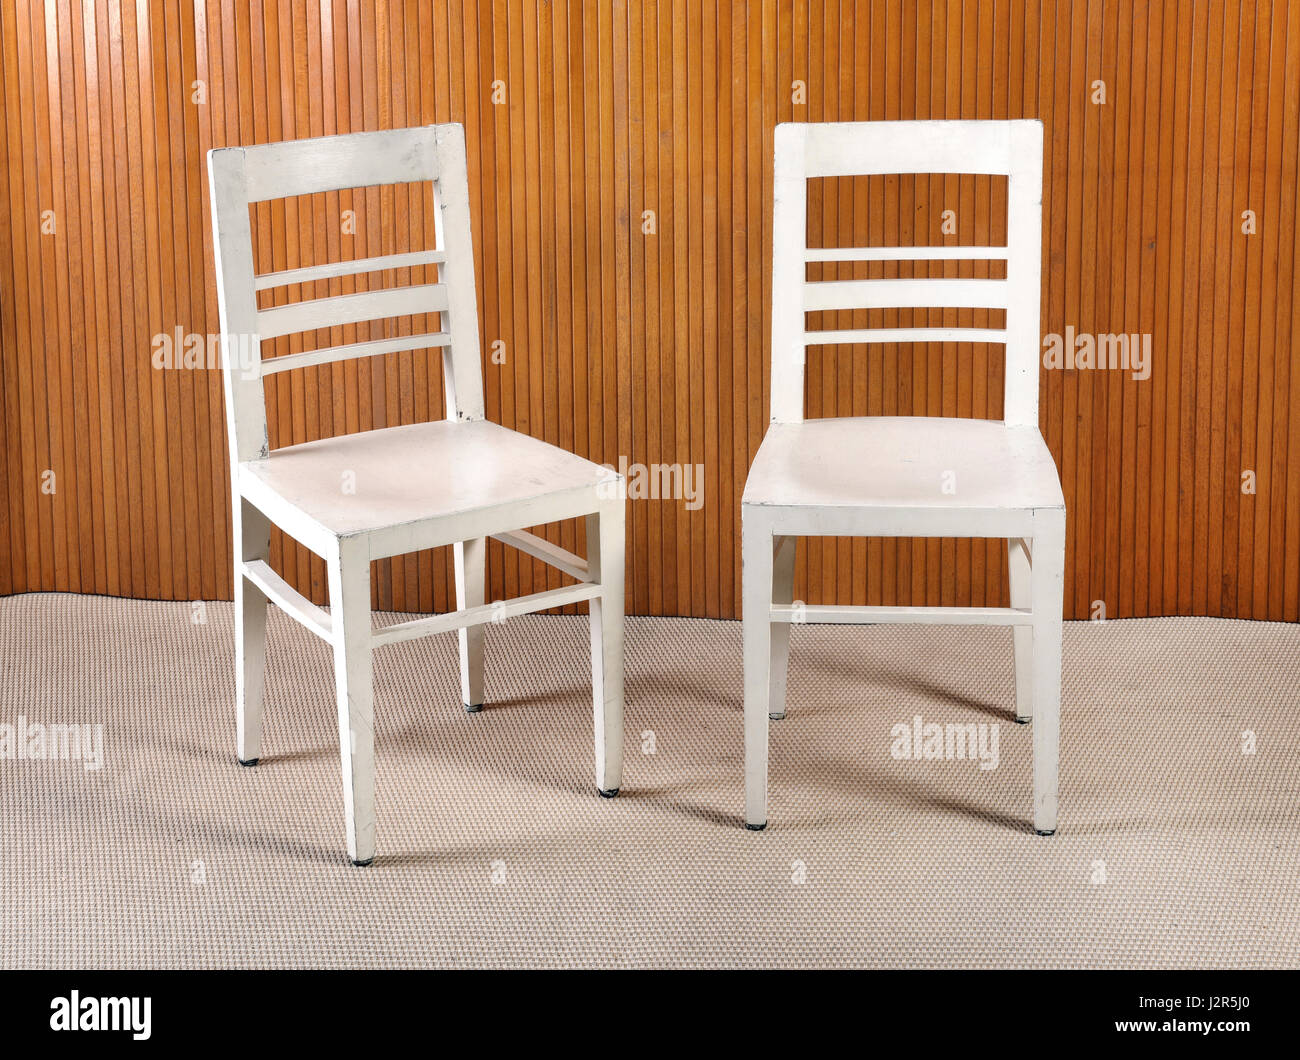 Different White Wooden Chairs Stock Photos & Different White Wooden ...